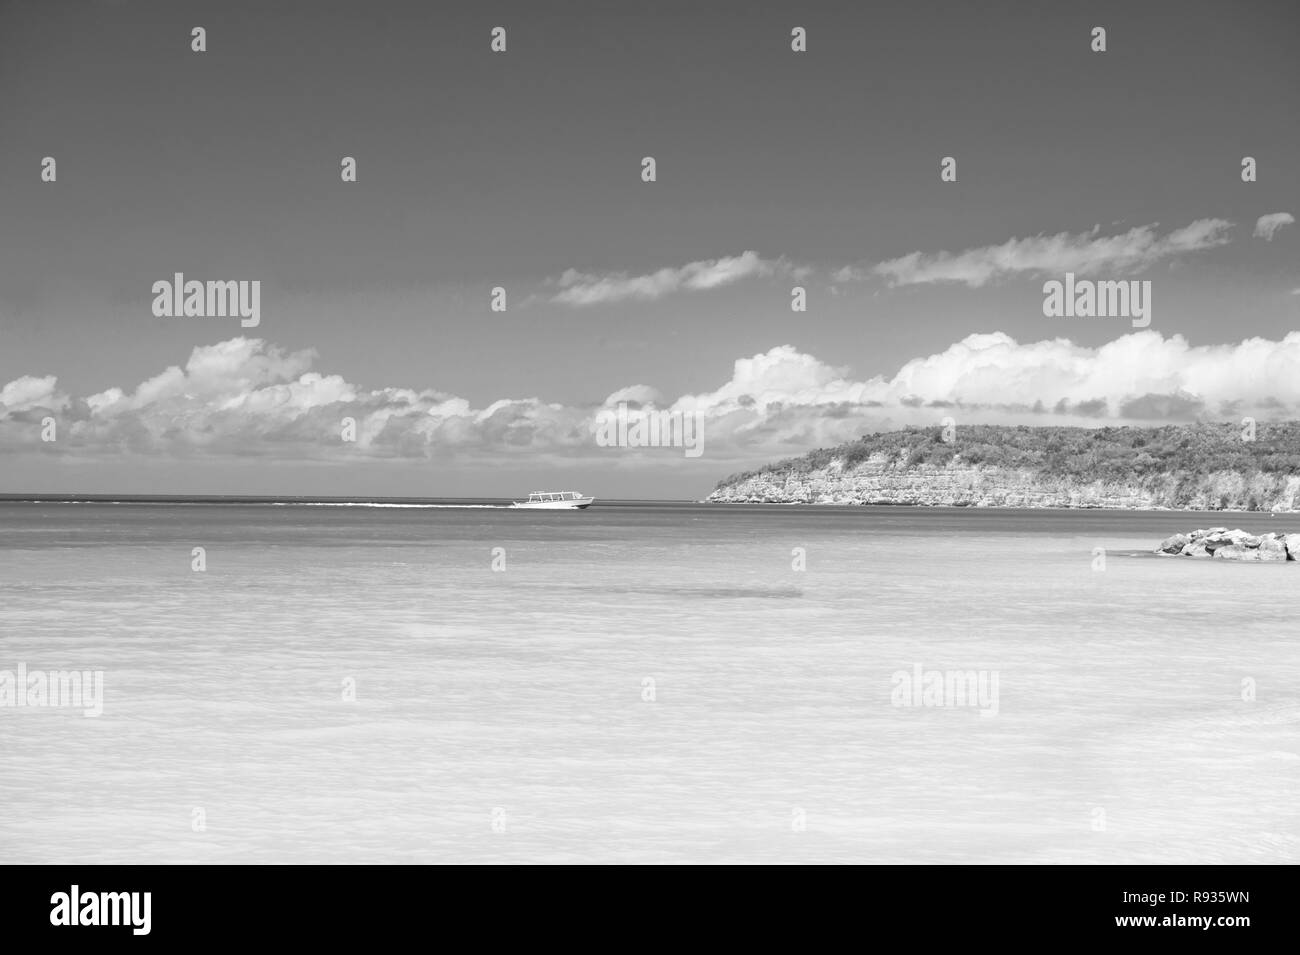 Sky with clouds over calm sea beach tropical resort. Boat touristic ship in turquoise ocean lagoon. Tourist attraction. Travel touristic boat tranquil lagoon. Sea excursion for holidaymakers. Stock Photo